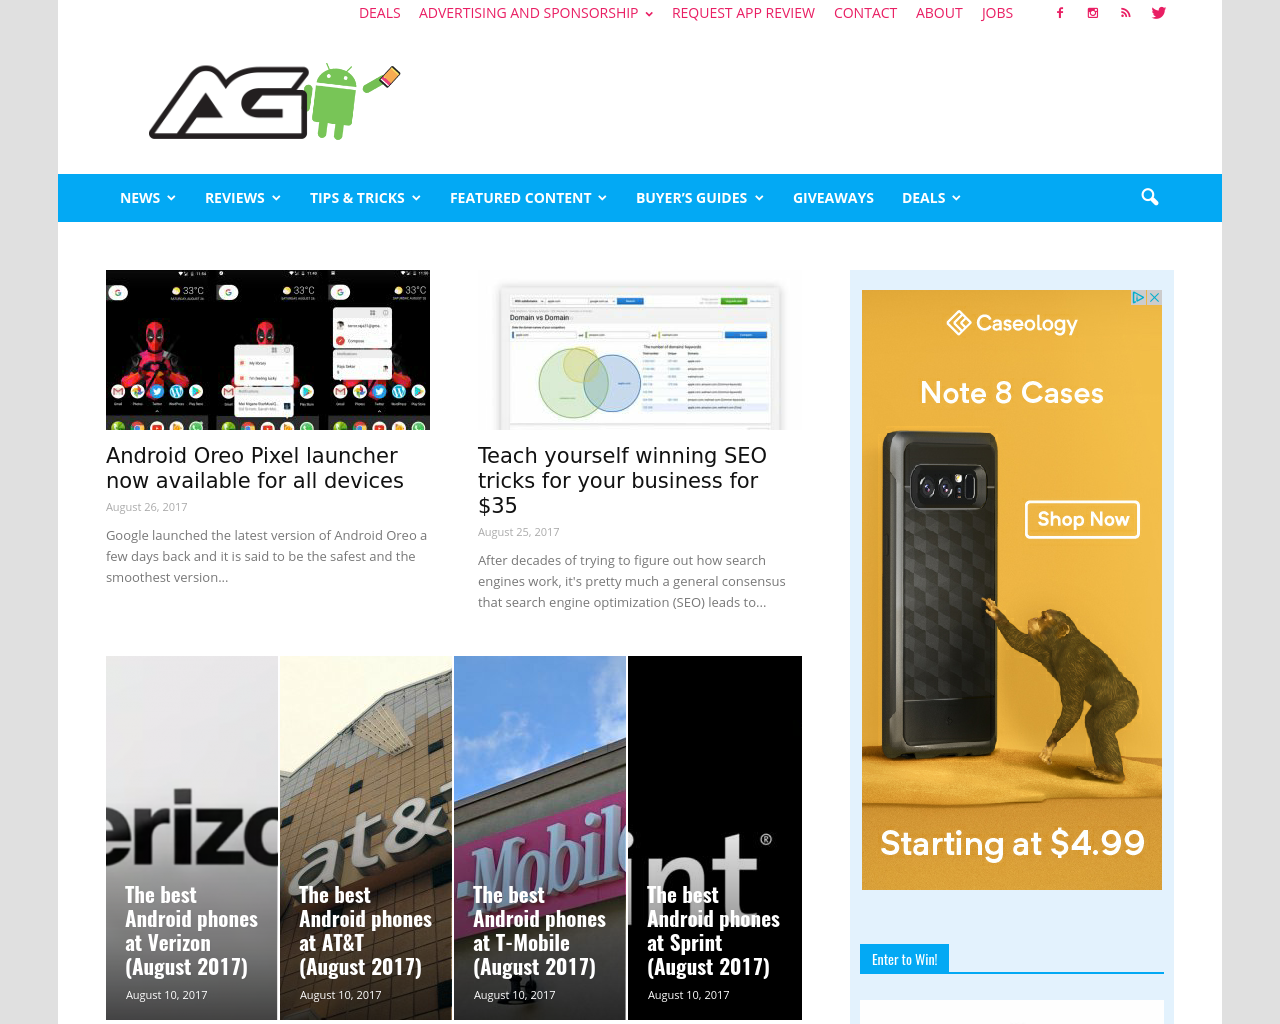 AndroidGuys-Advertising-Reviews-Pricing